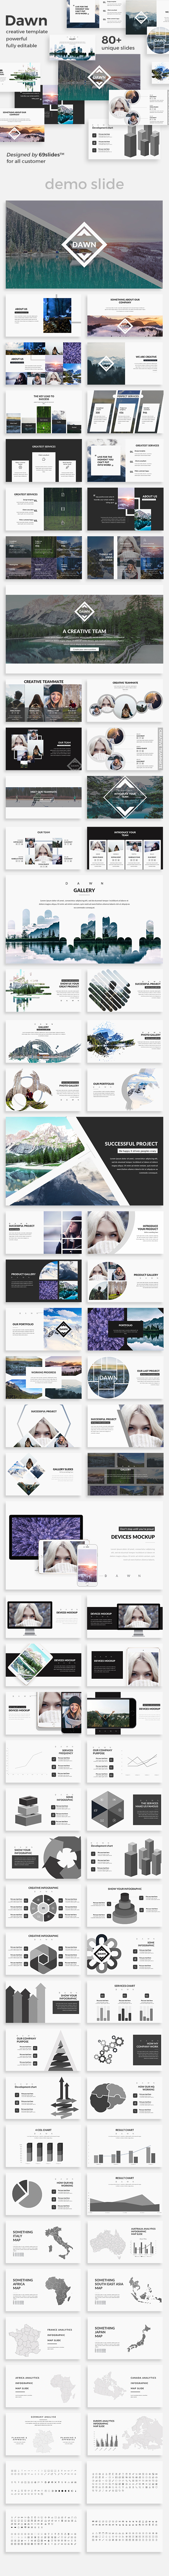 Dawn Creative Keynote Template - Creative Keynote Templates